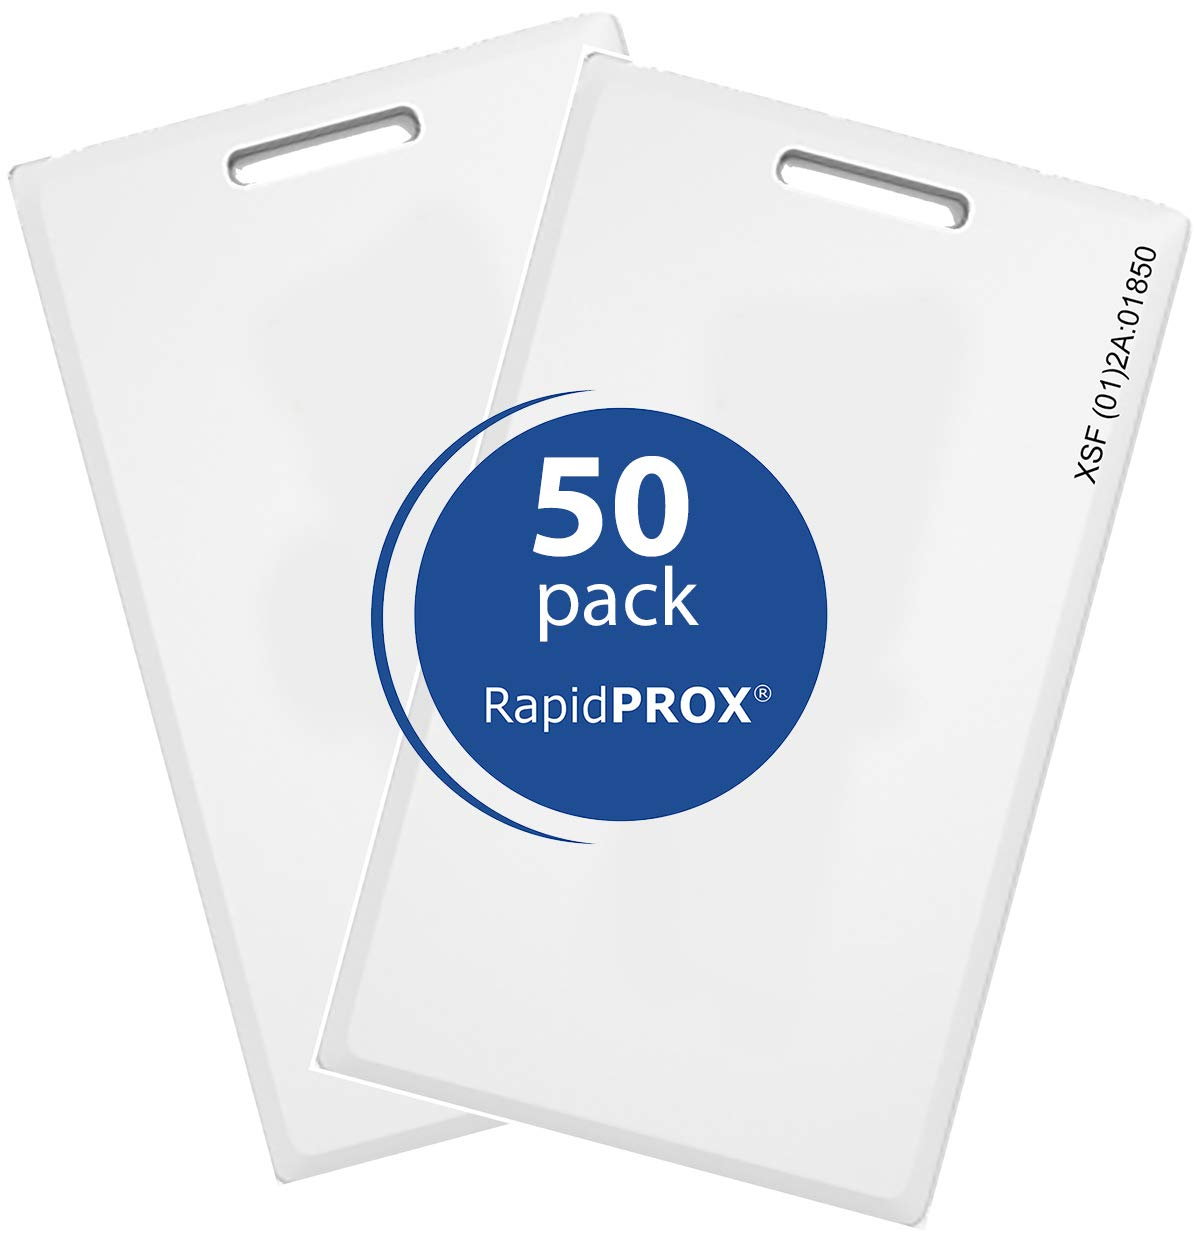 RapidPROX Clamshell Cards for Kantech - Compare to P10SHL (50 Pack)